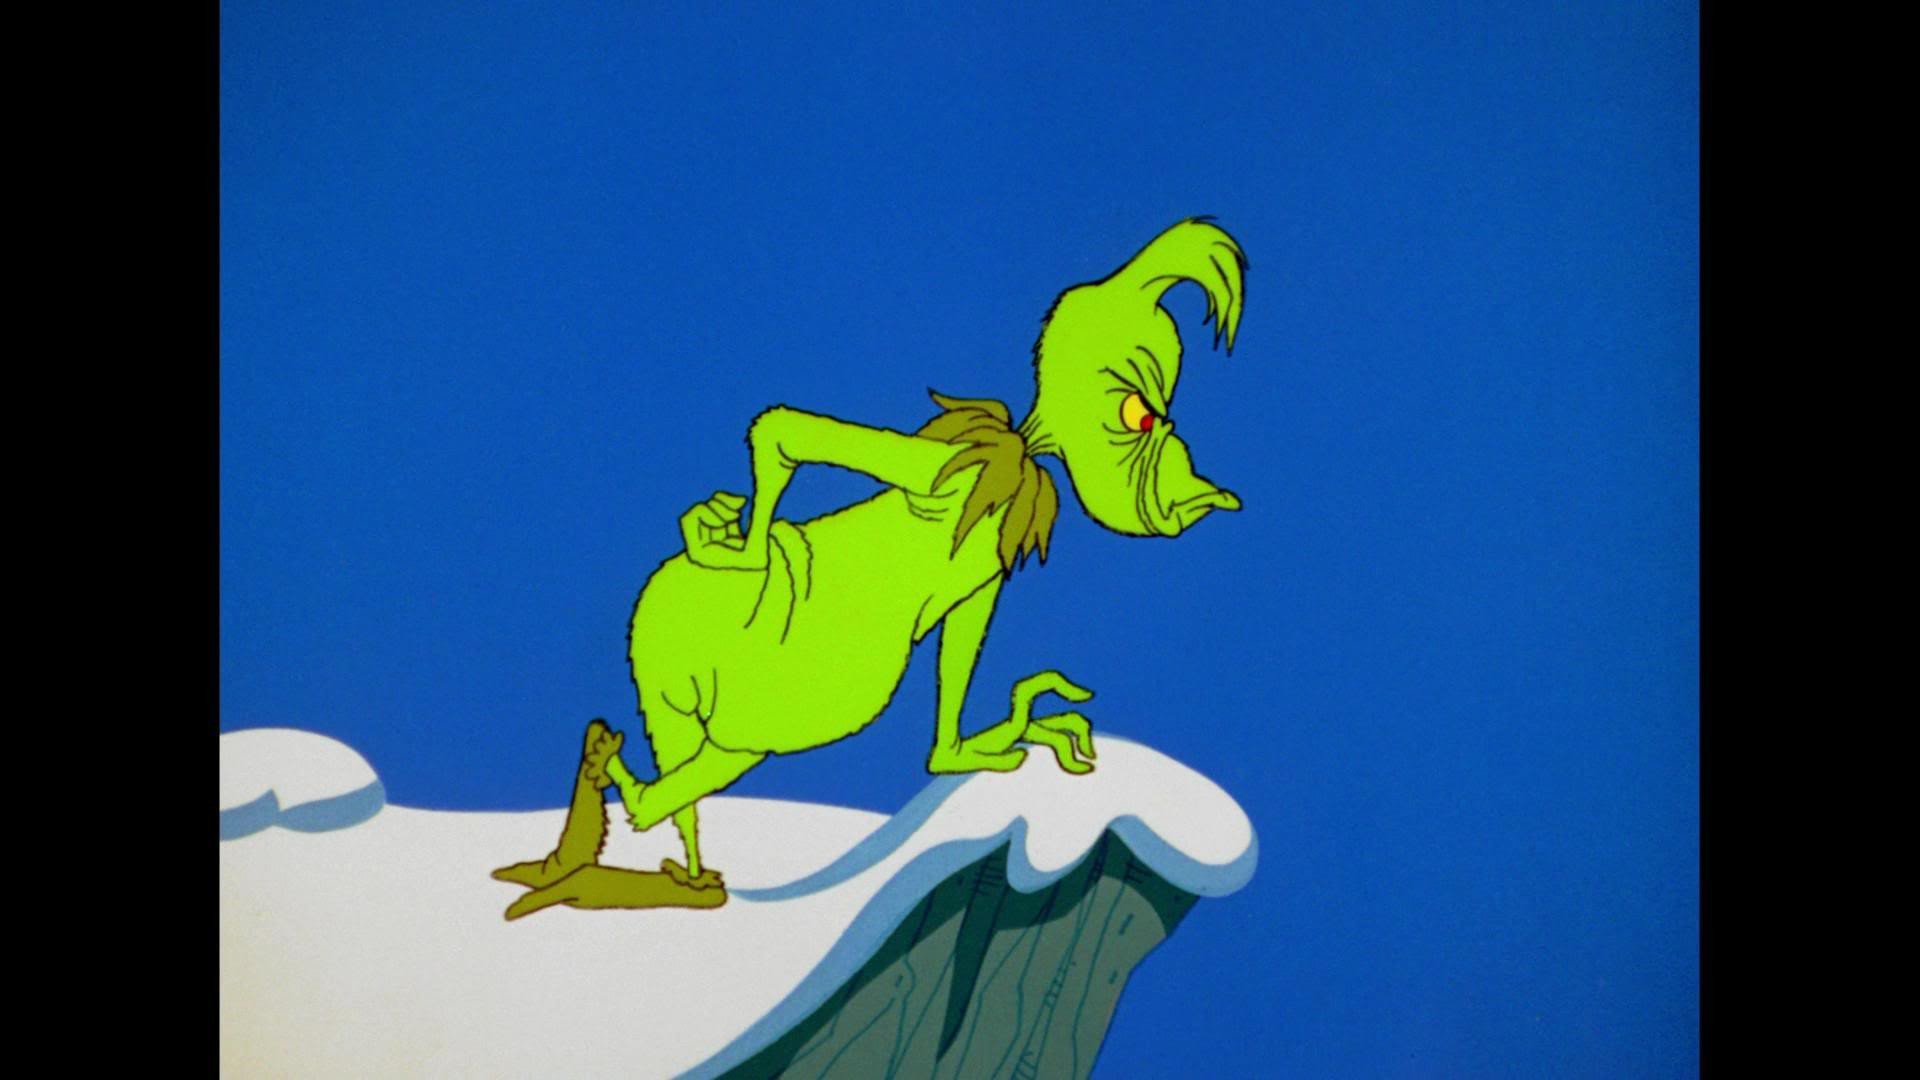 The Grinch Hating Christmas Wallpaper